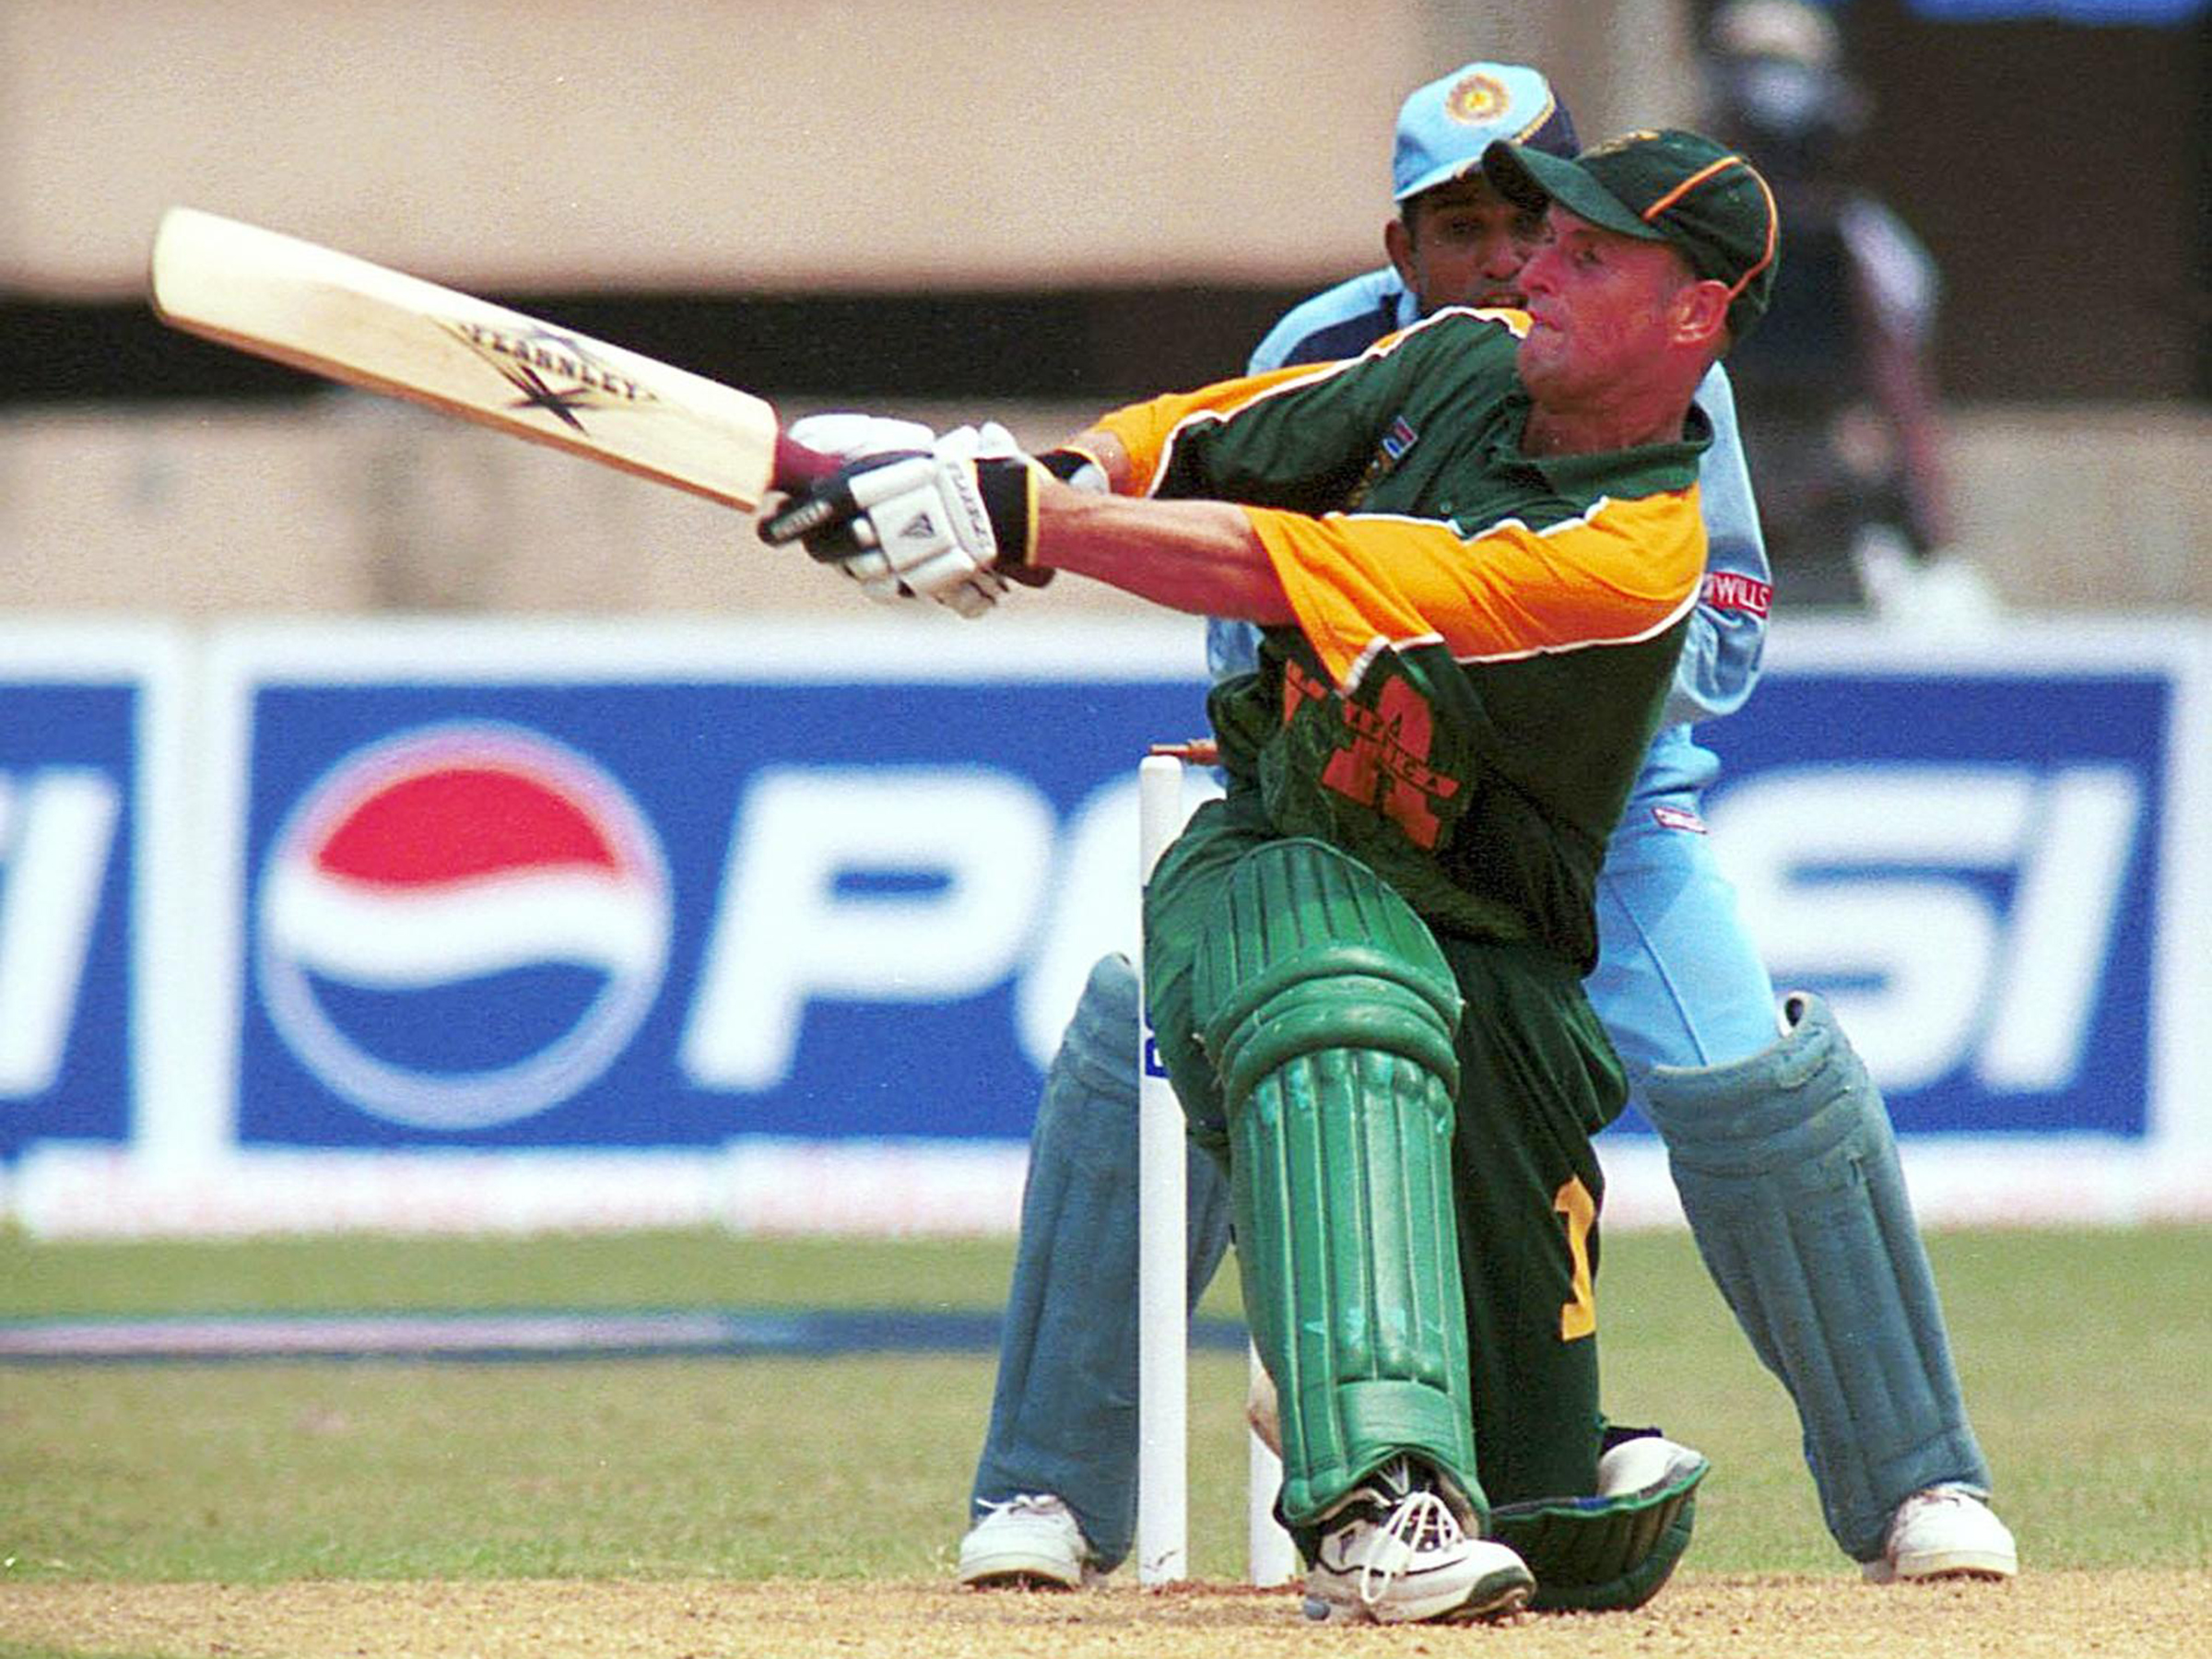 Gary Kirsten helped South Africa win the 2000 Singapore Challenge // Getty